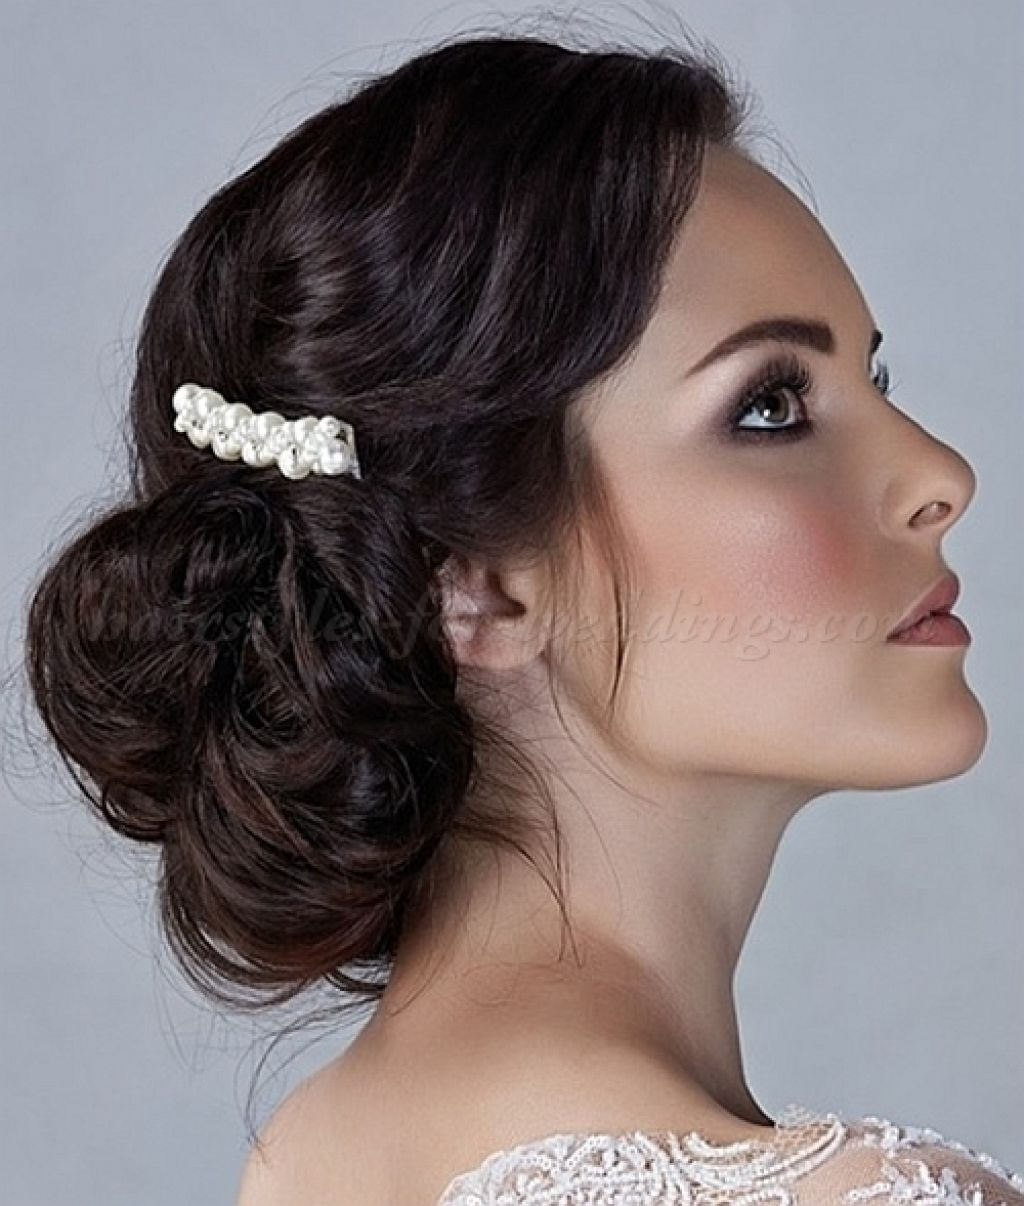 Low Messy Side Bun Hairstyle With Long Hair Elegant Wedding Pertaining To Low Bun Updo Hairstyles For Wedding (View 7 of 15)